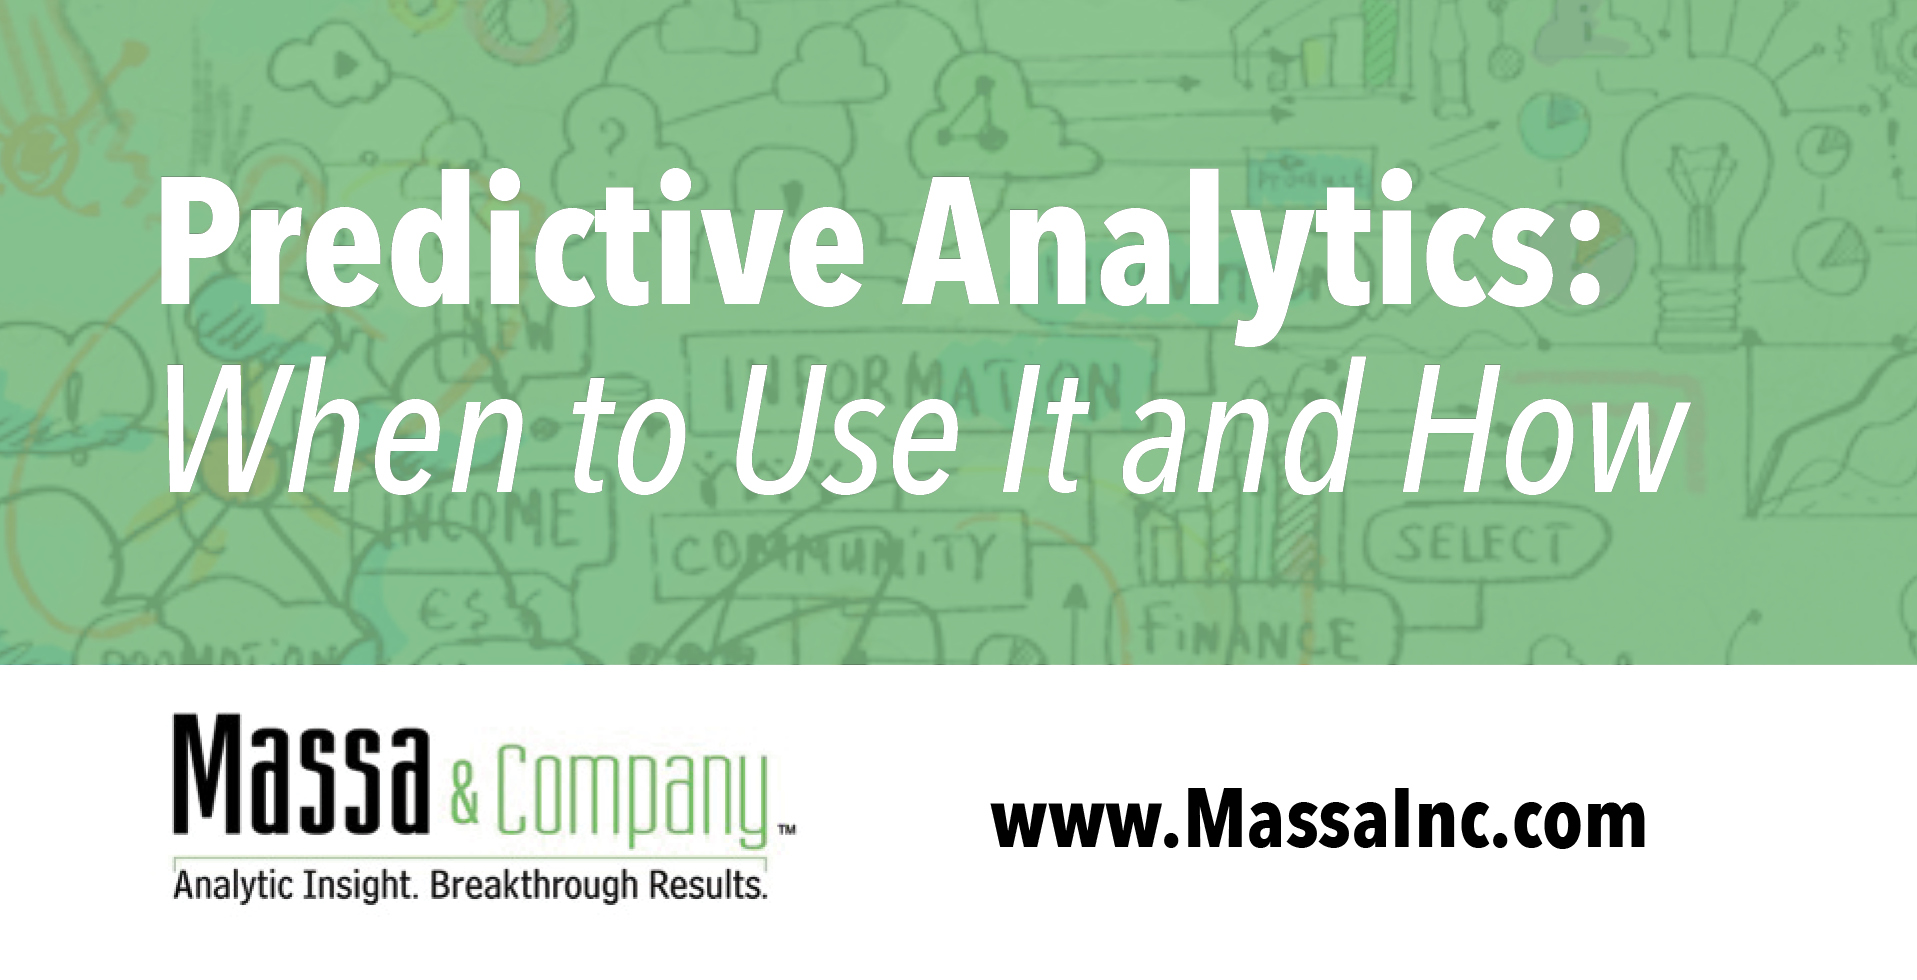 Predictive Analytics: When to Use It and How